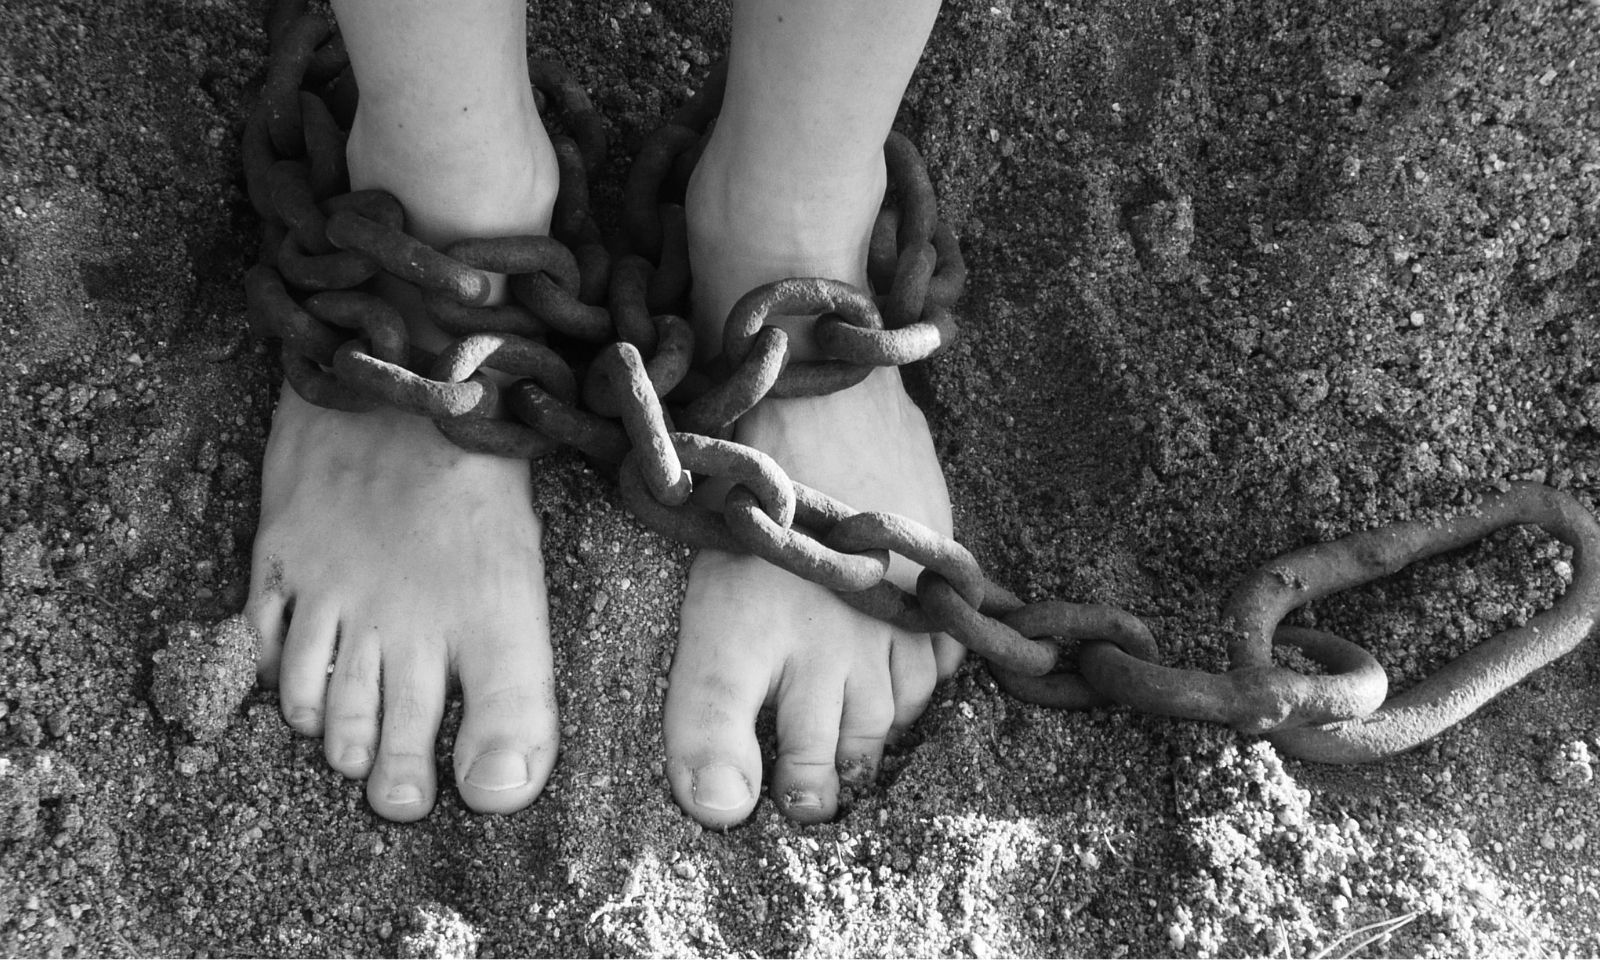 Girl kidnaps in Barak Valley: A Man was arrested in Cachar for kidnapping a girl